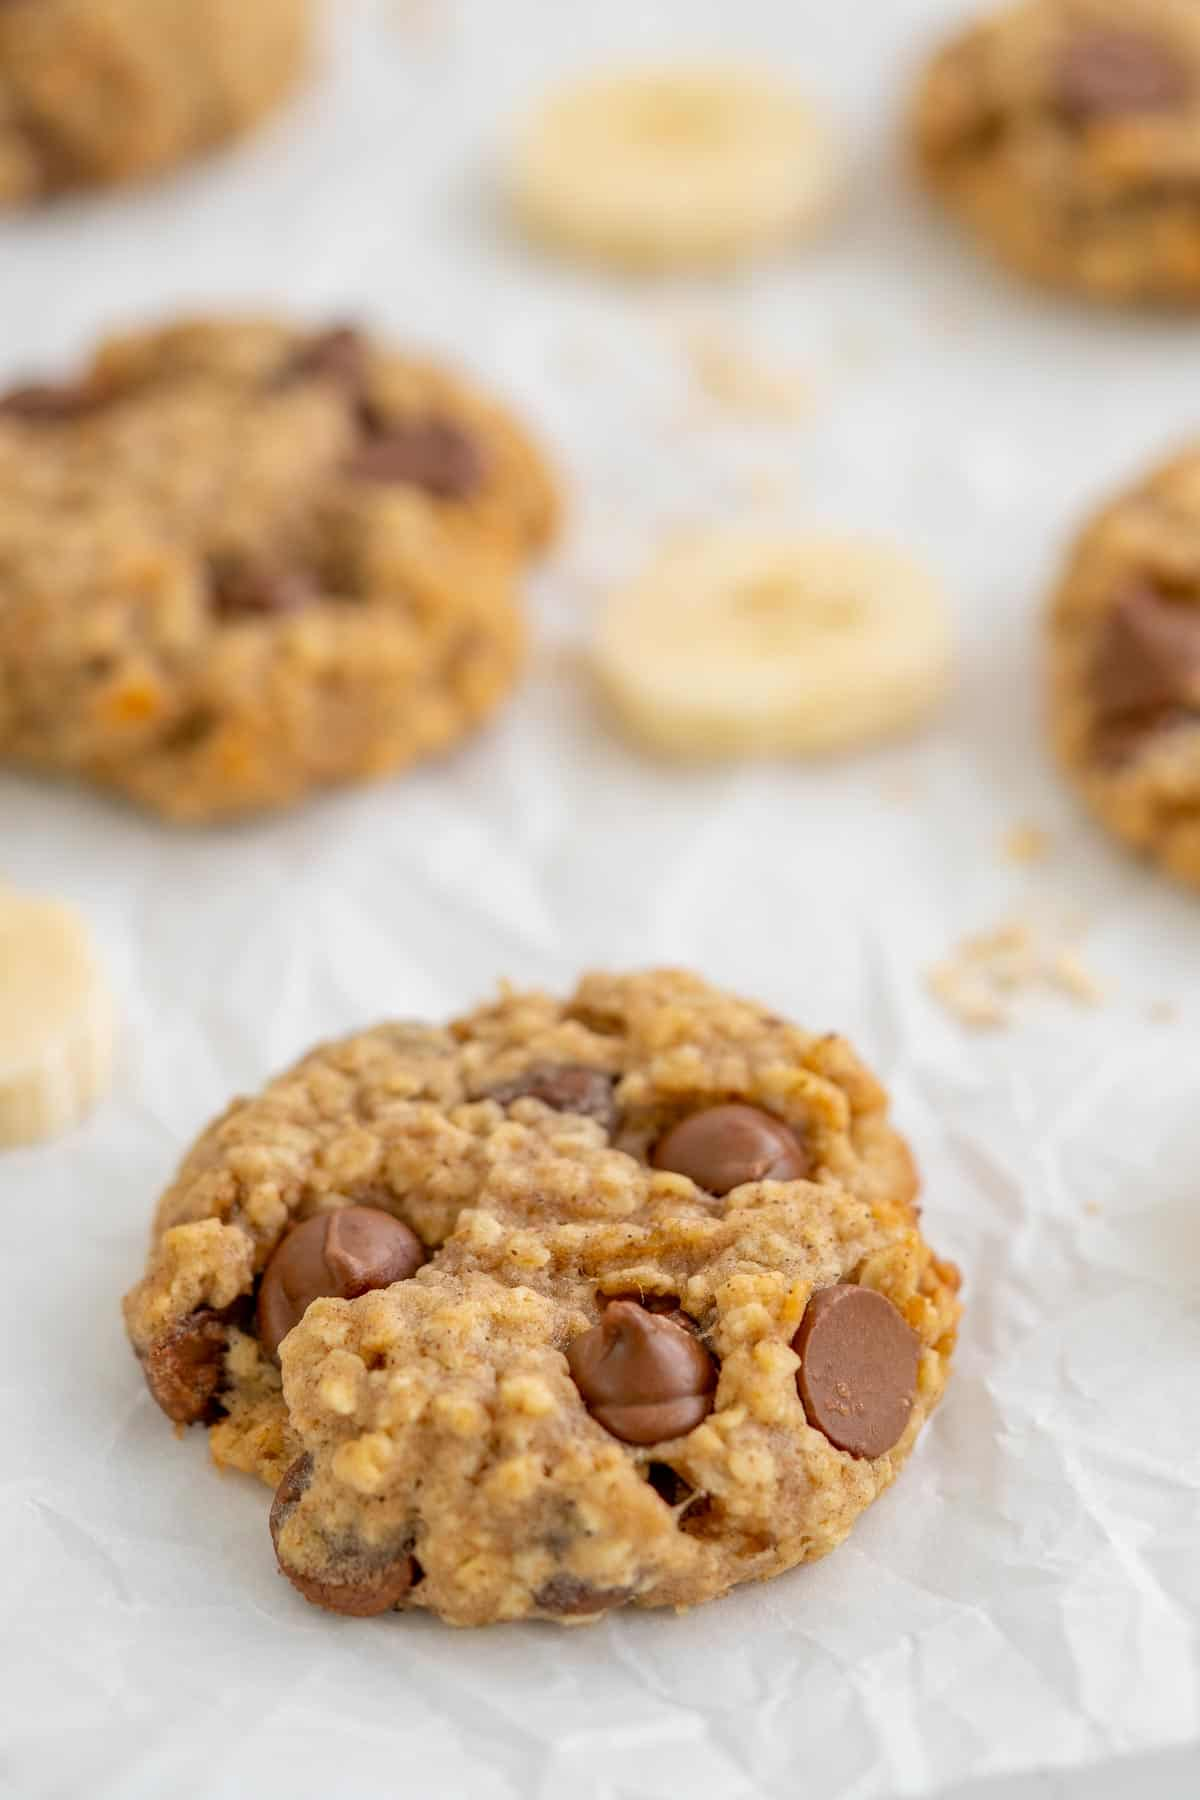 A banana oatmeal cookie on crinkled baking paper, with slices of banana and a scattering of rolled oats and chocolate drops.